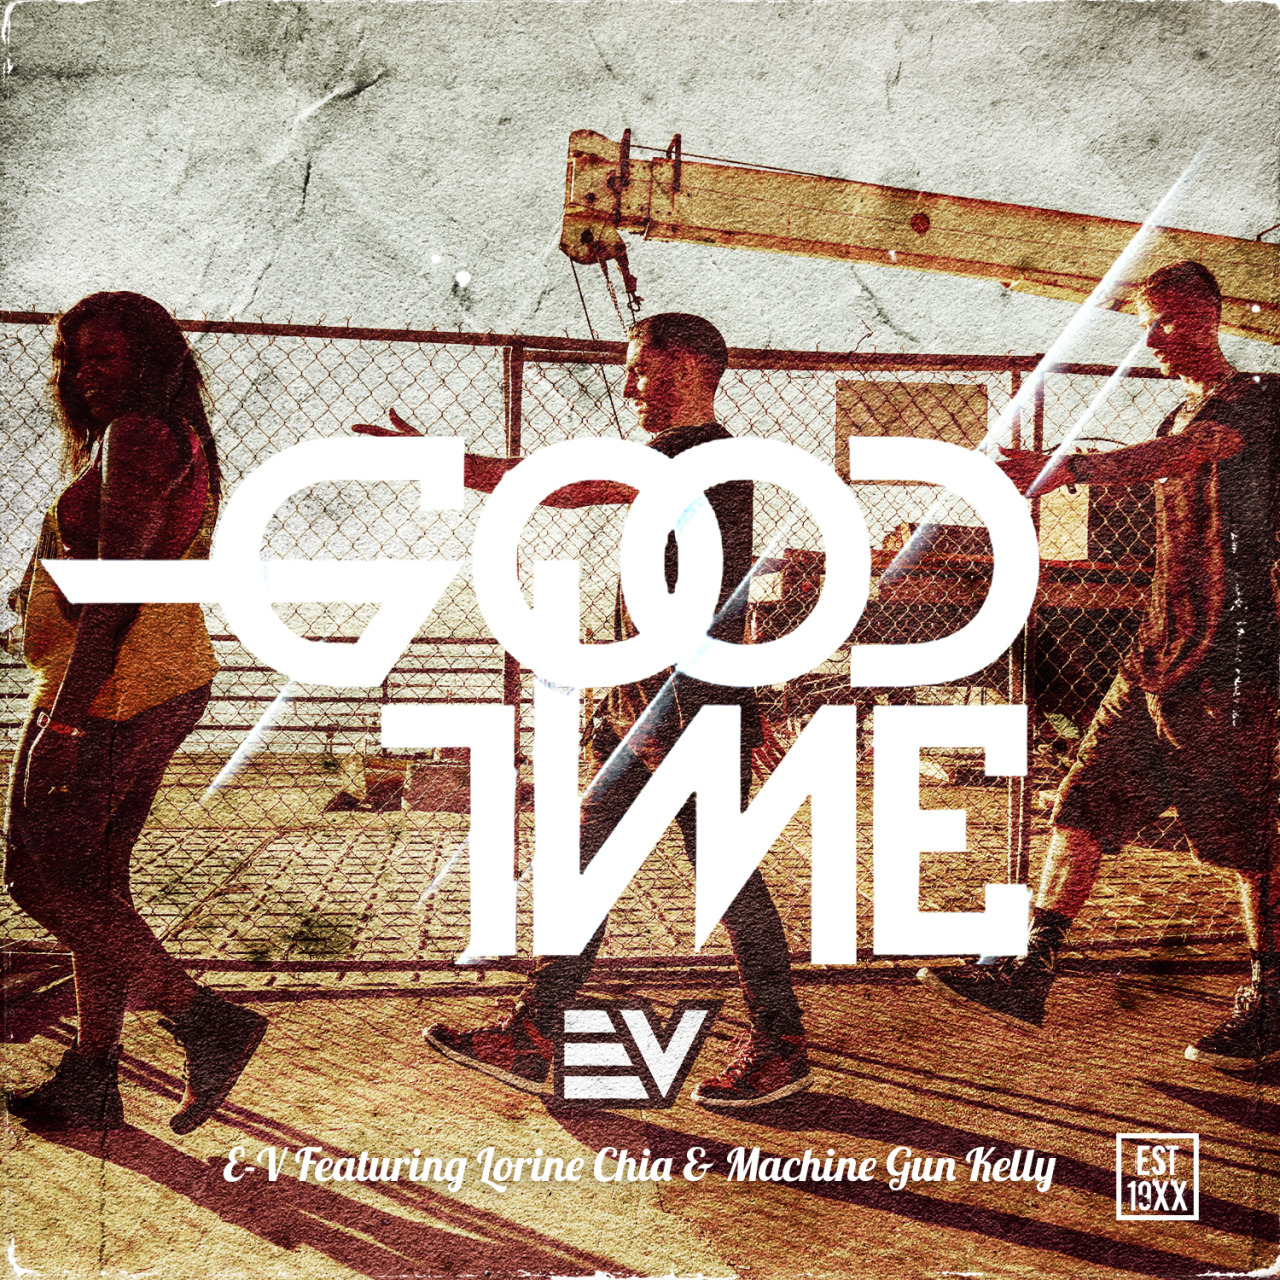 ilthyworkshop: Goodtime E-V featuring Lorine Chia and Machine Gun Kelly is now available for download on iTunes. Click here to download.